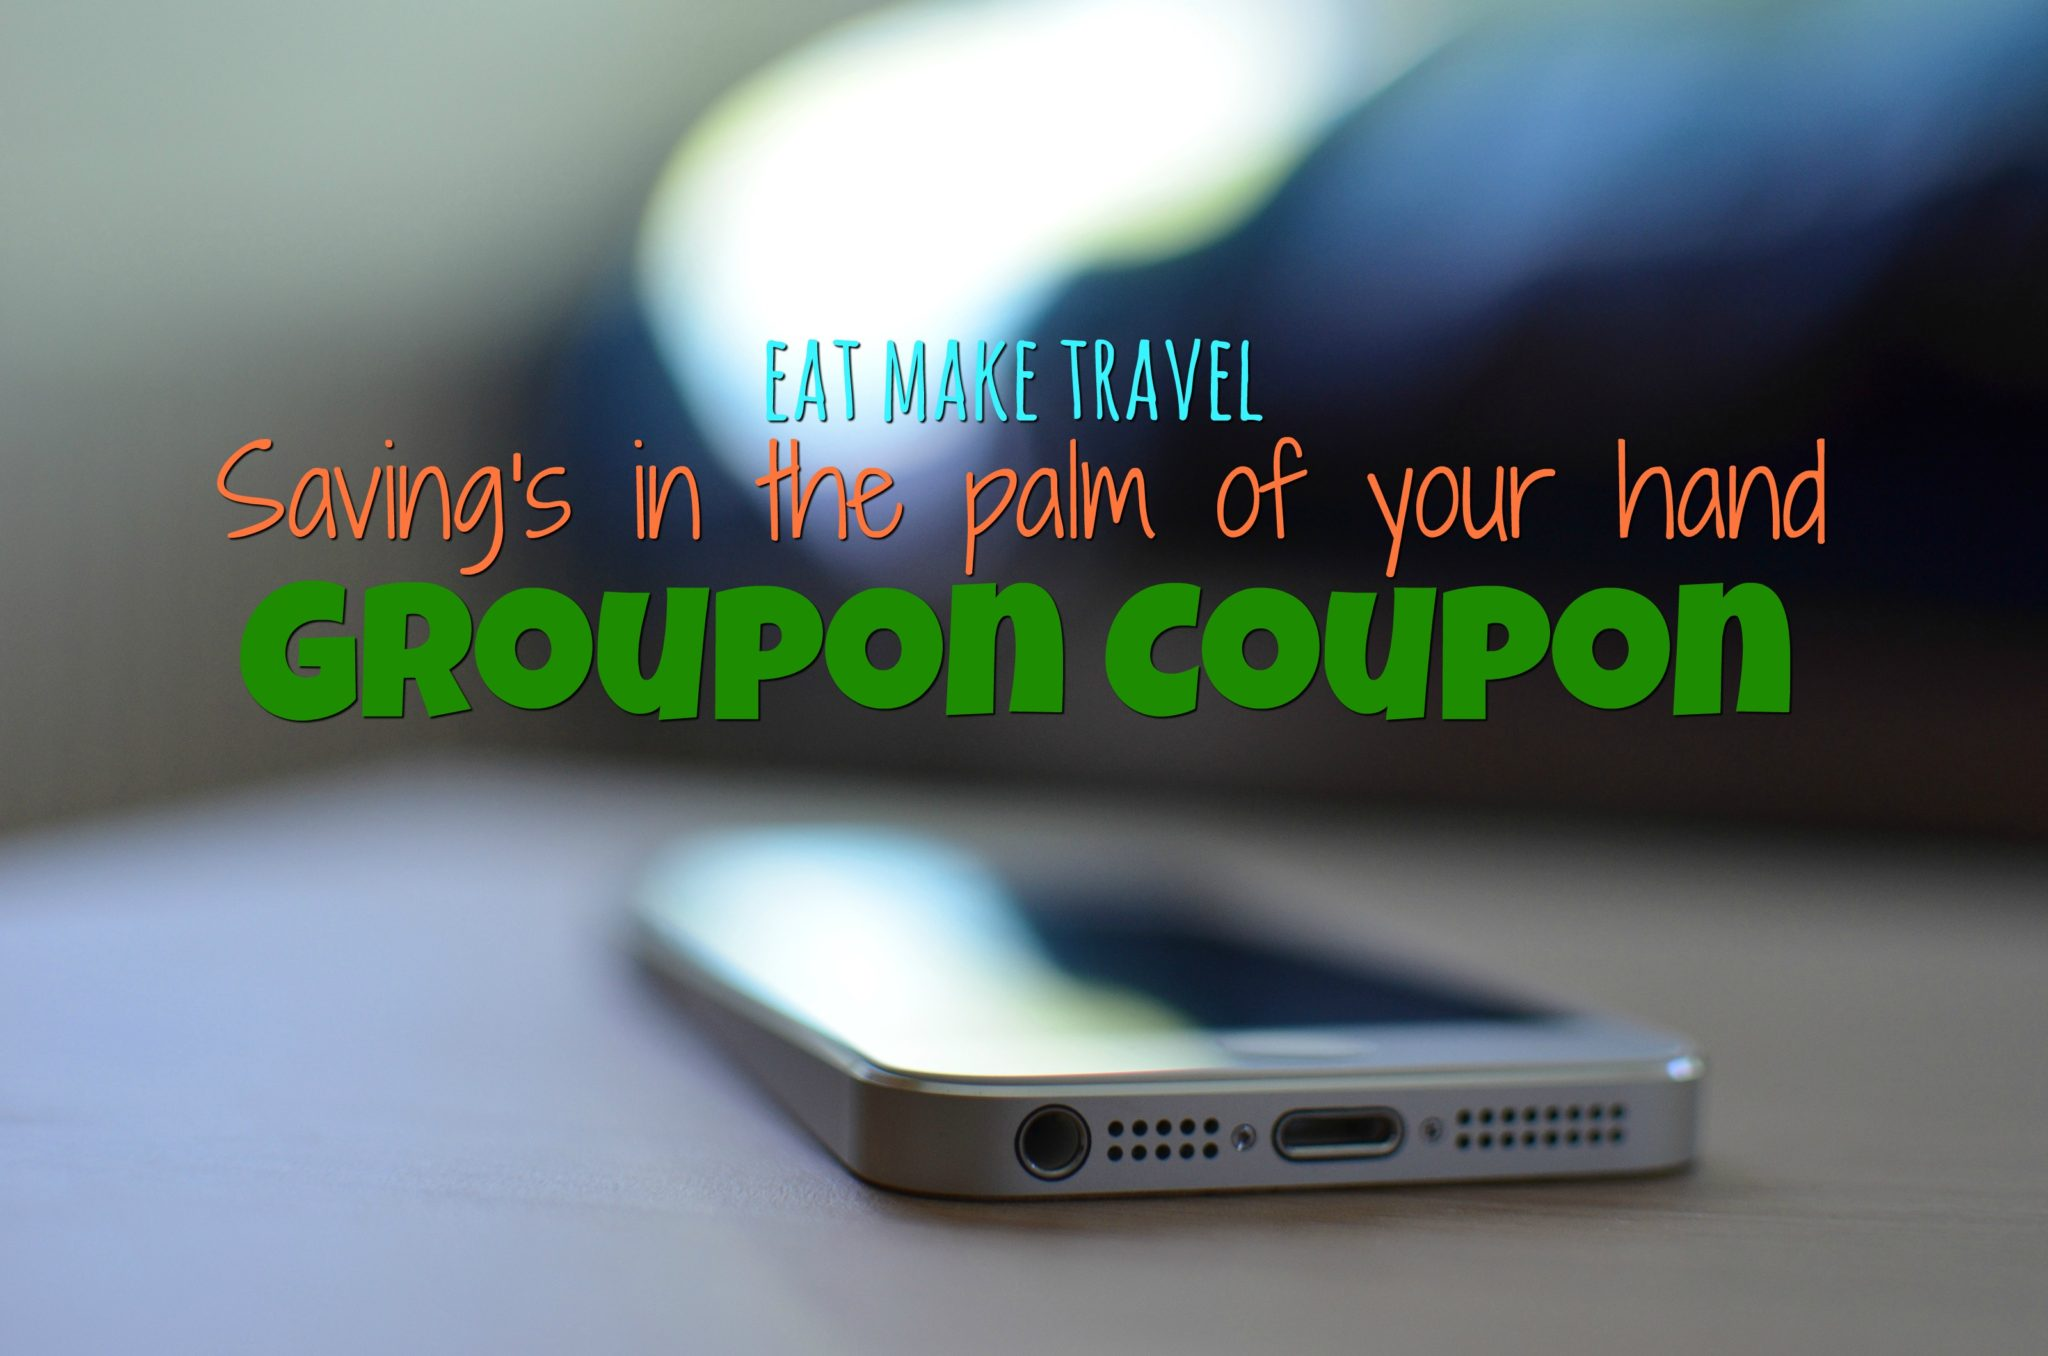 Saving's in the Palm of your hand with Groupon coupons!